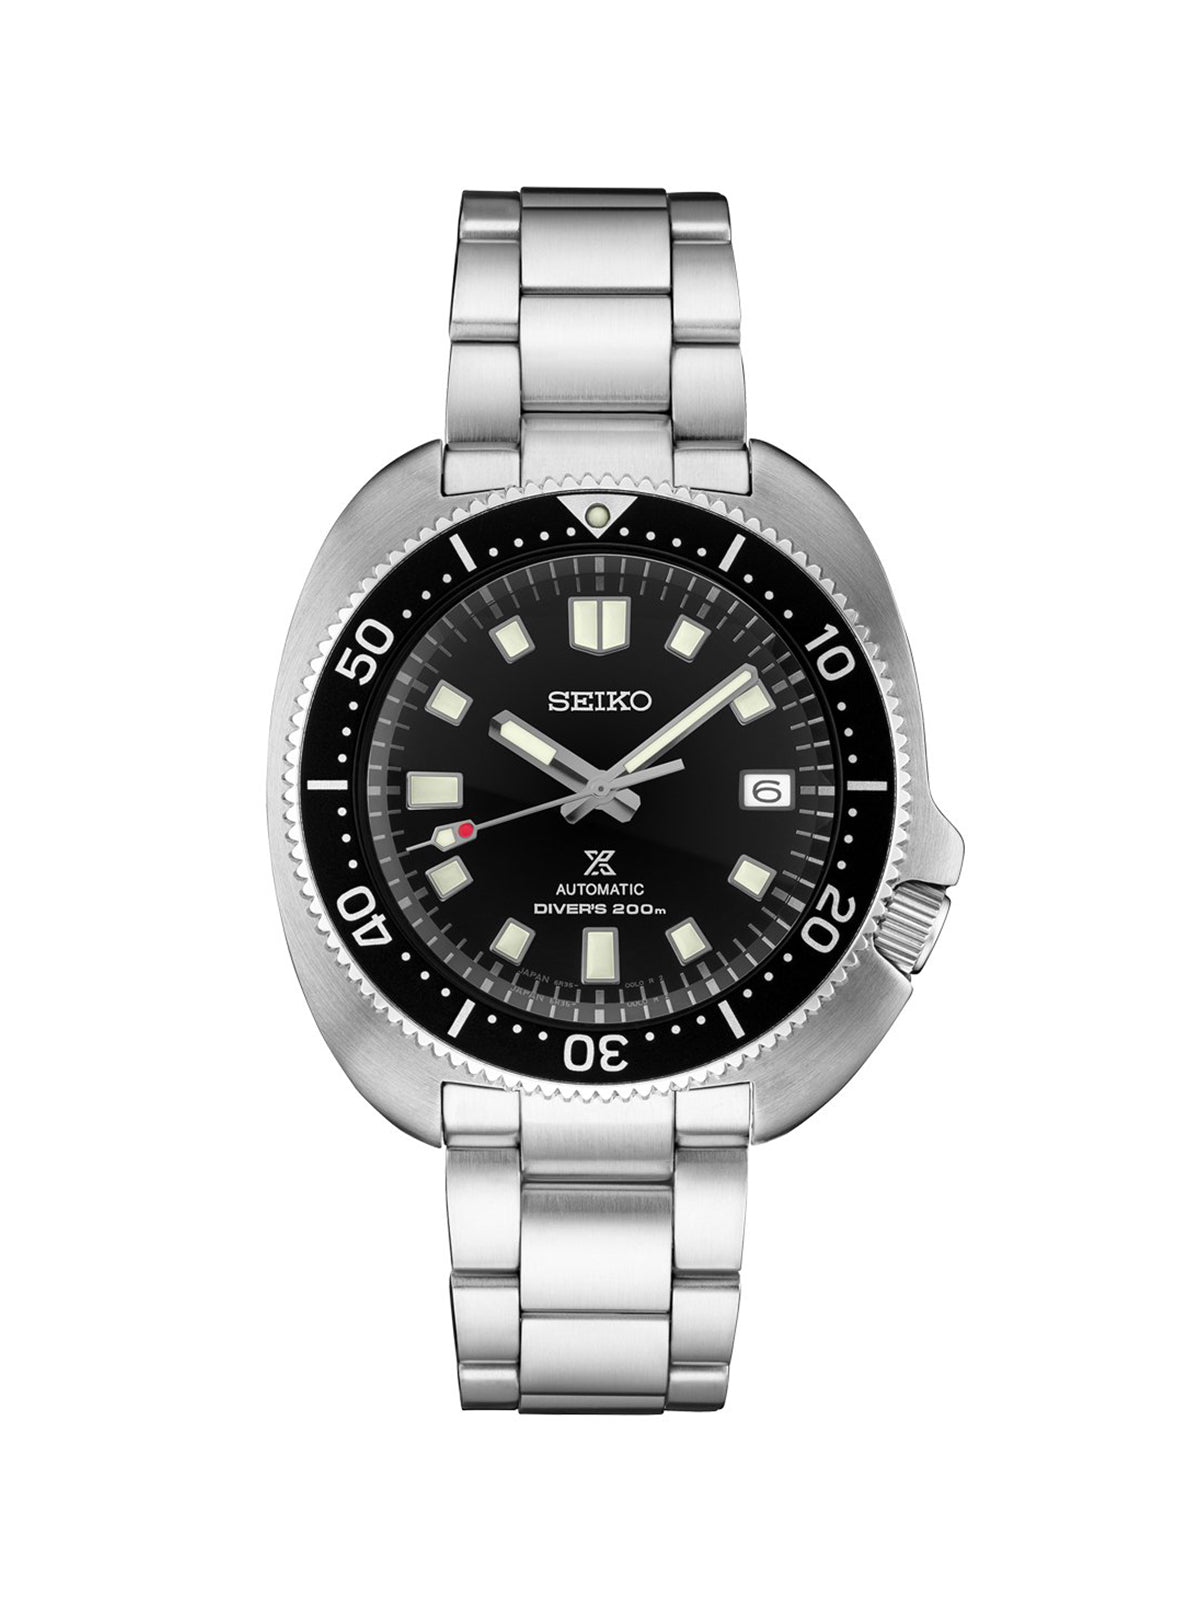 Seiko Prospex 1970 Willard Watch with Black Dial